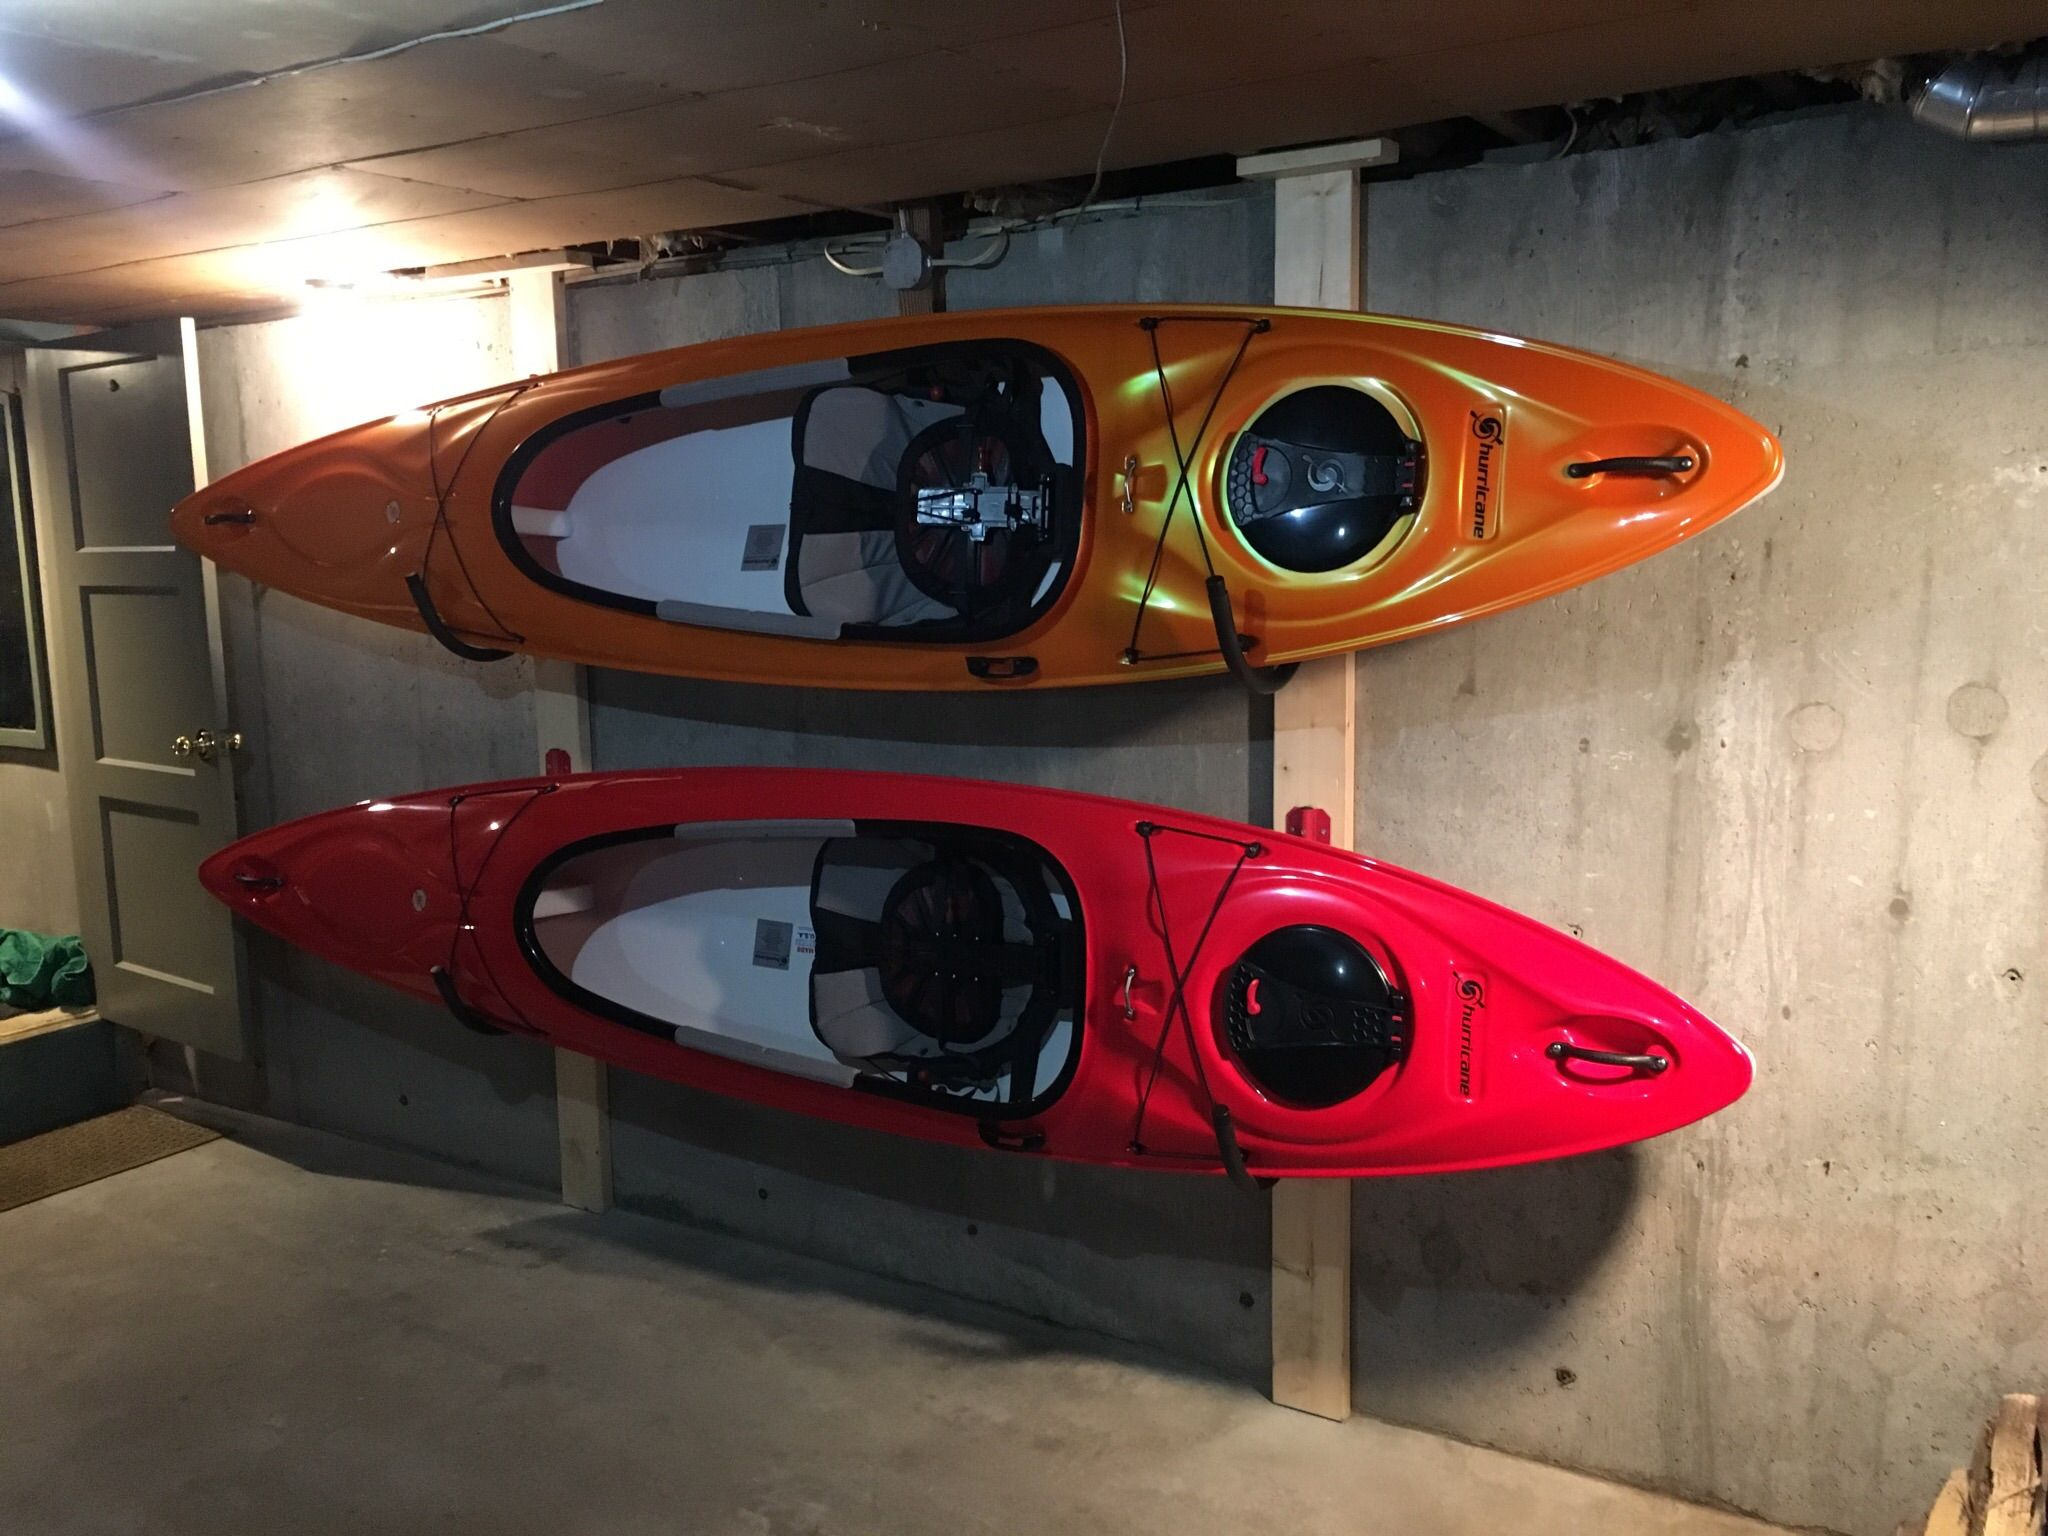 Clean Up Your Garage By Storing Your Kayaks In A Wall Rack Kayak Storage Rack Kayak Storage Kayaking